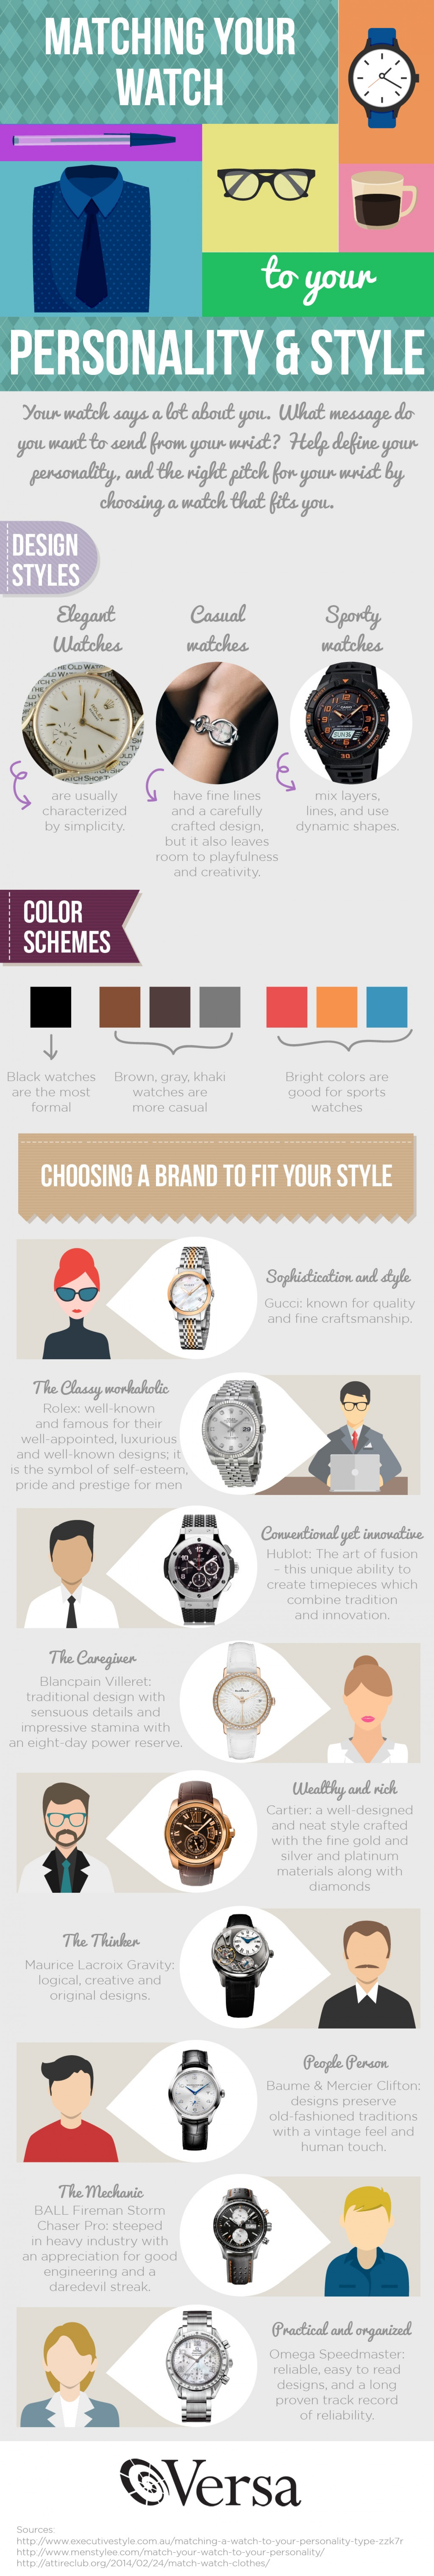 Matching Your Watch To Your Personality and Style Infographic